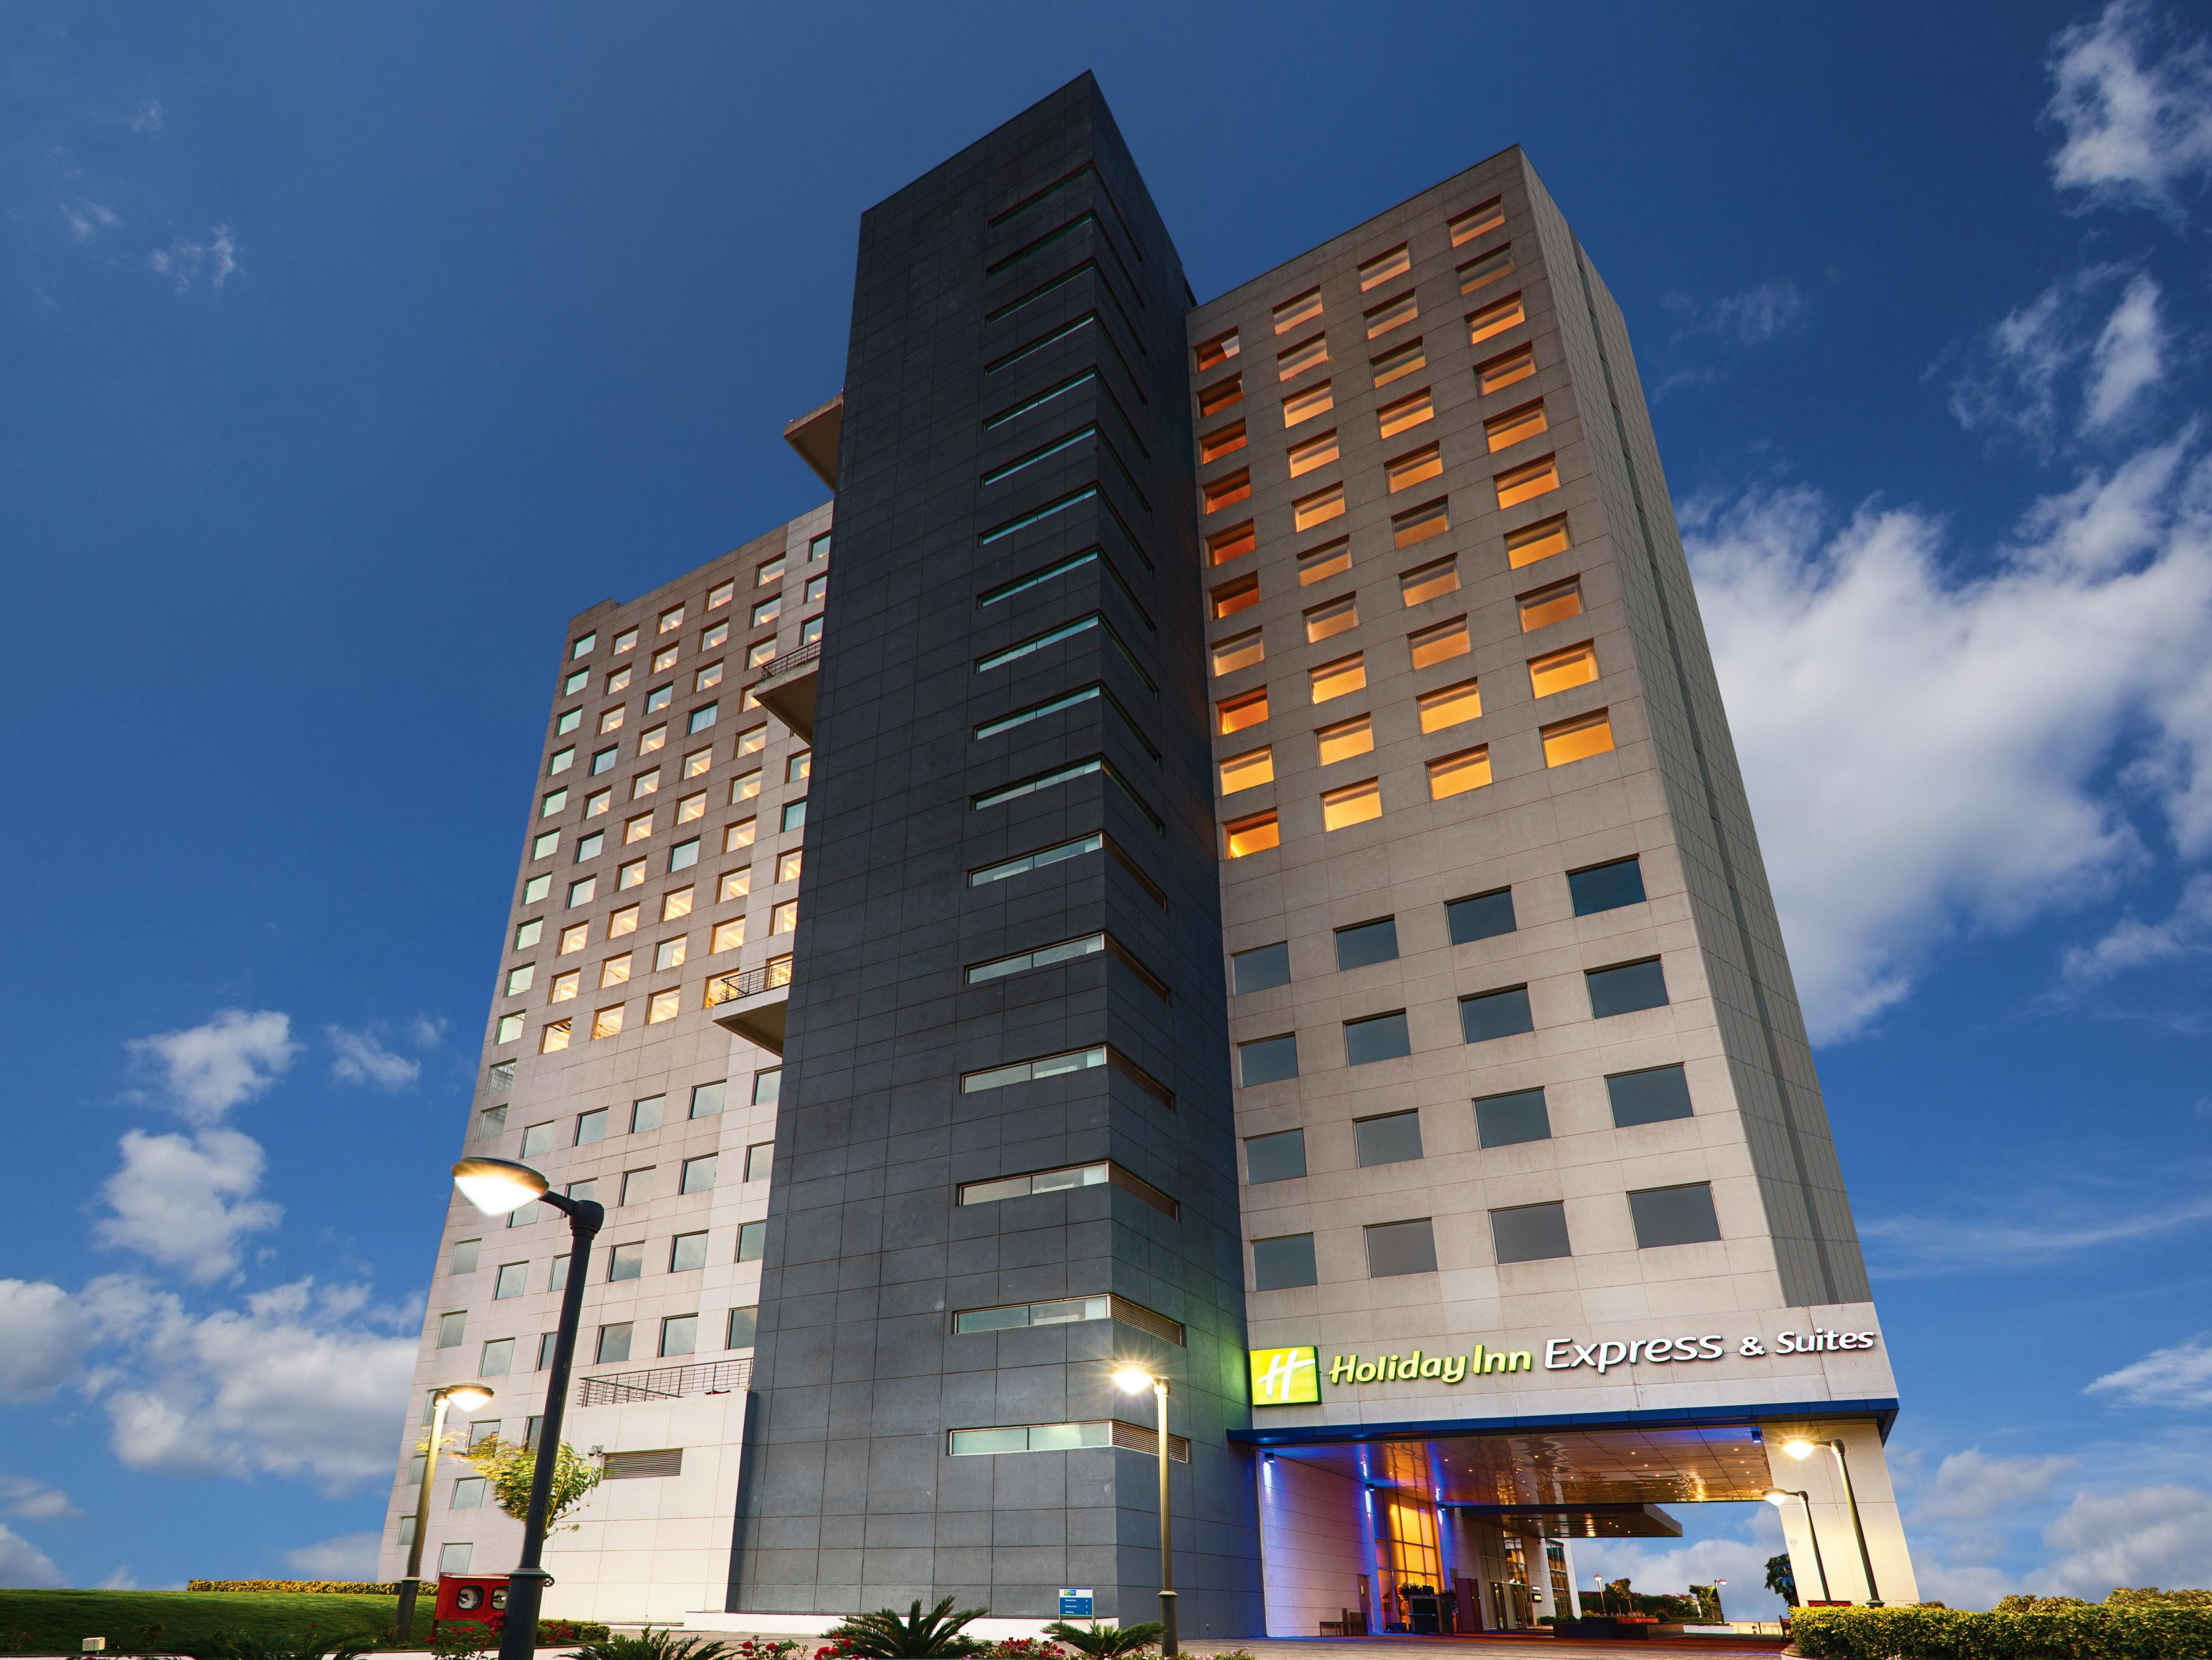 Holiday Inn Express & Suites Hyderabad Gachibowli Hotel Exterior